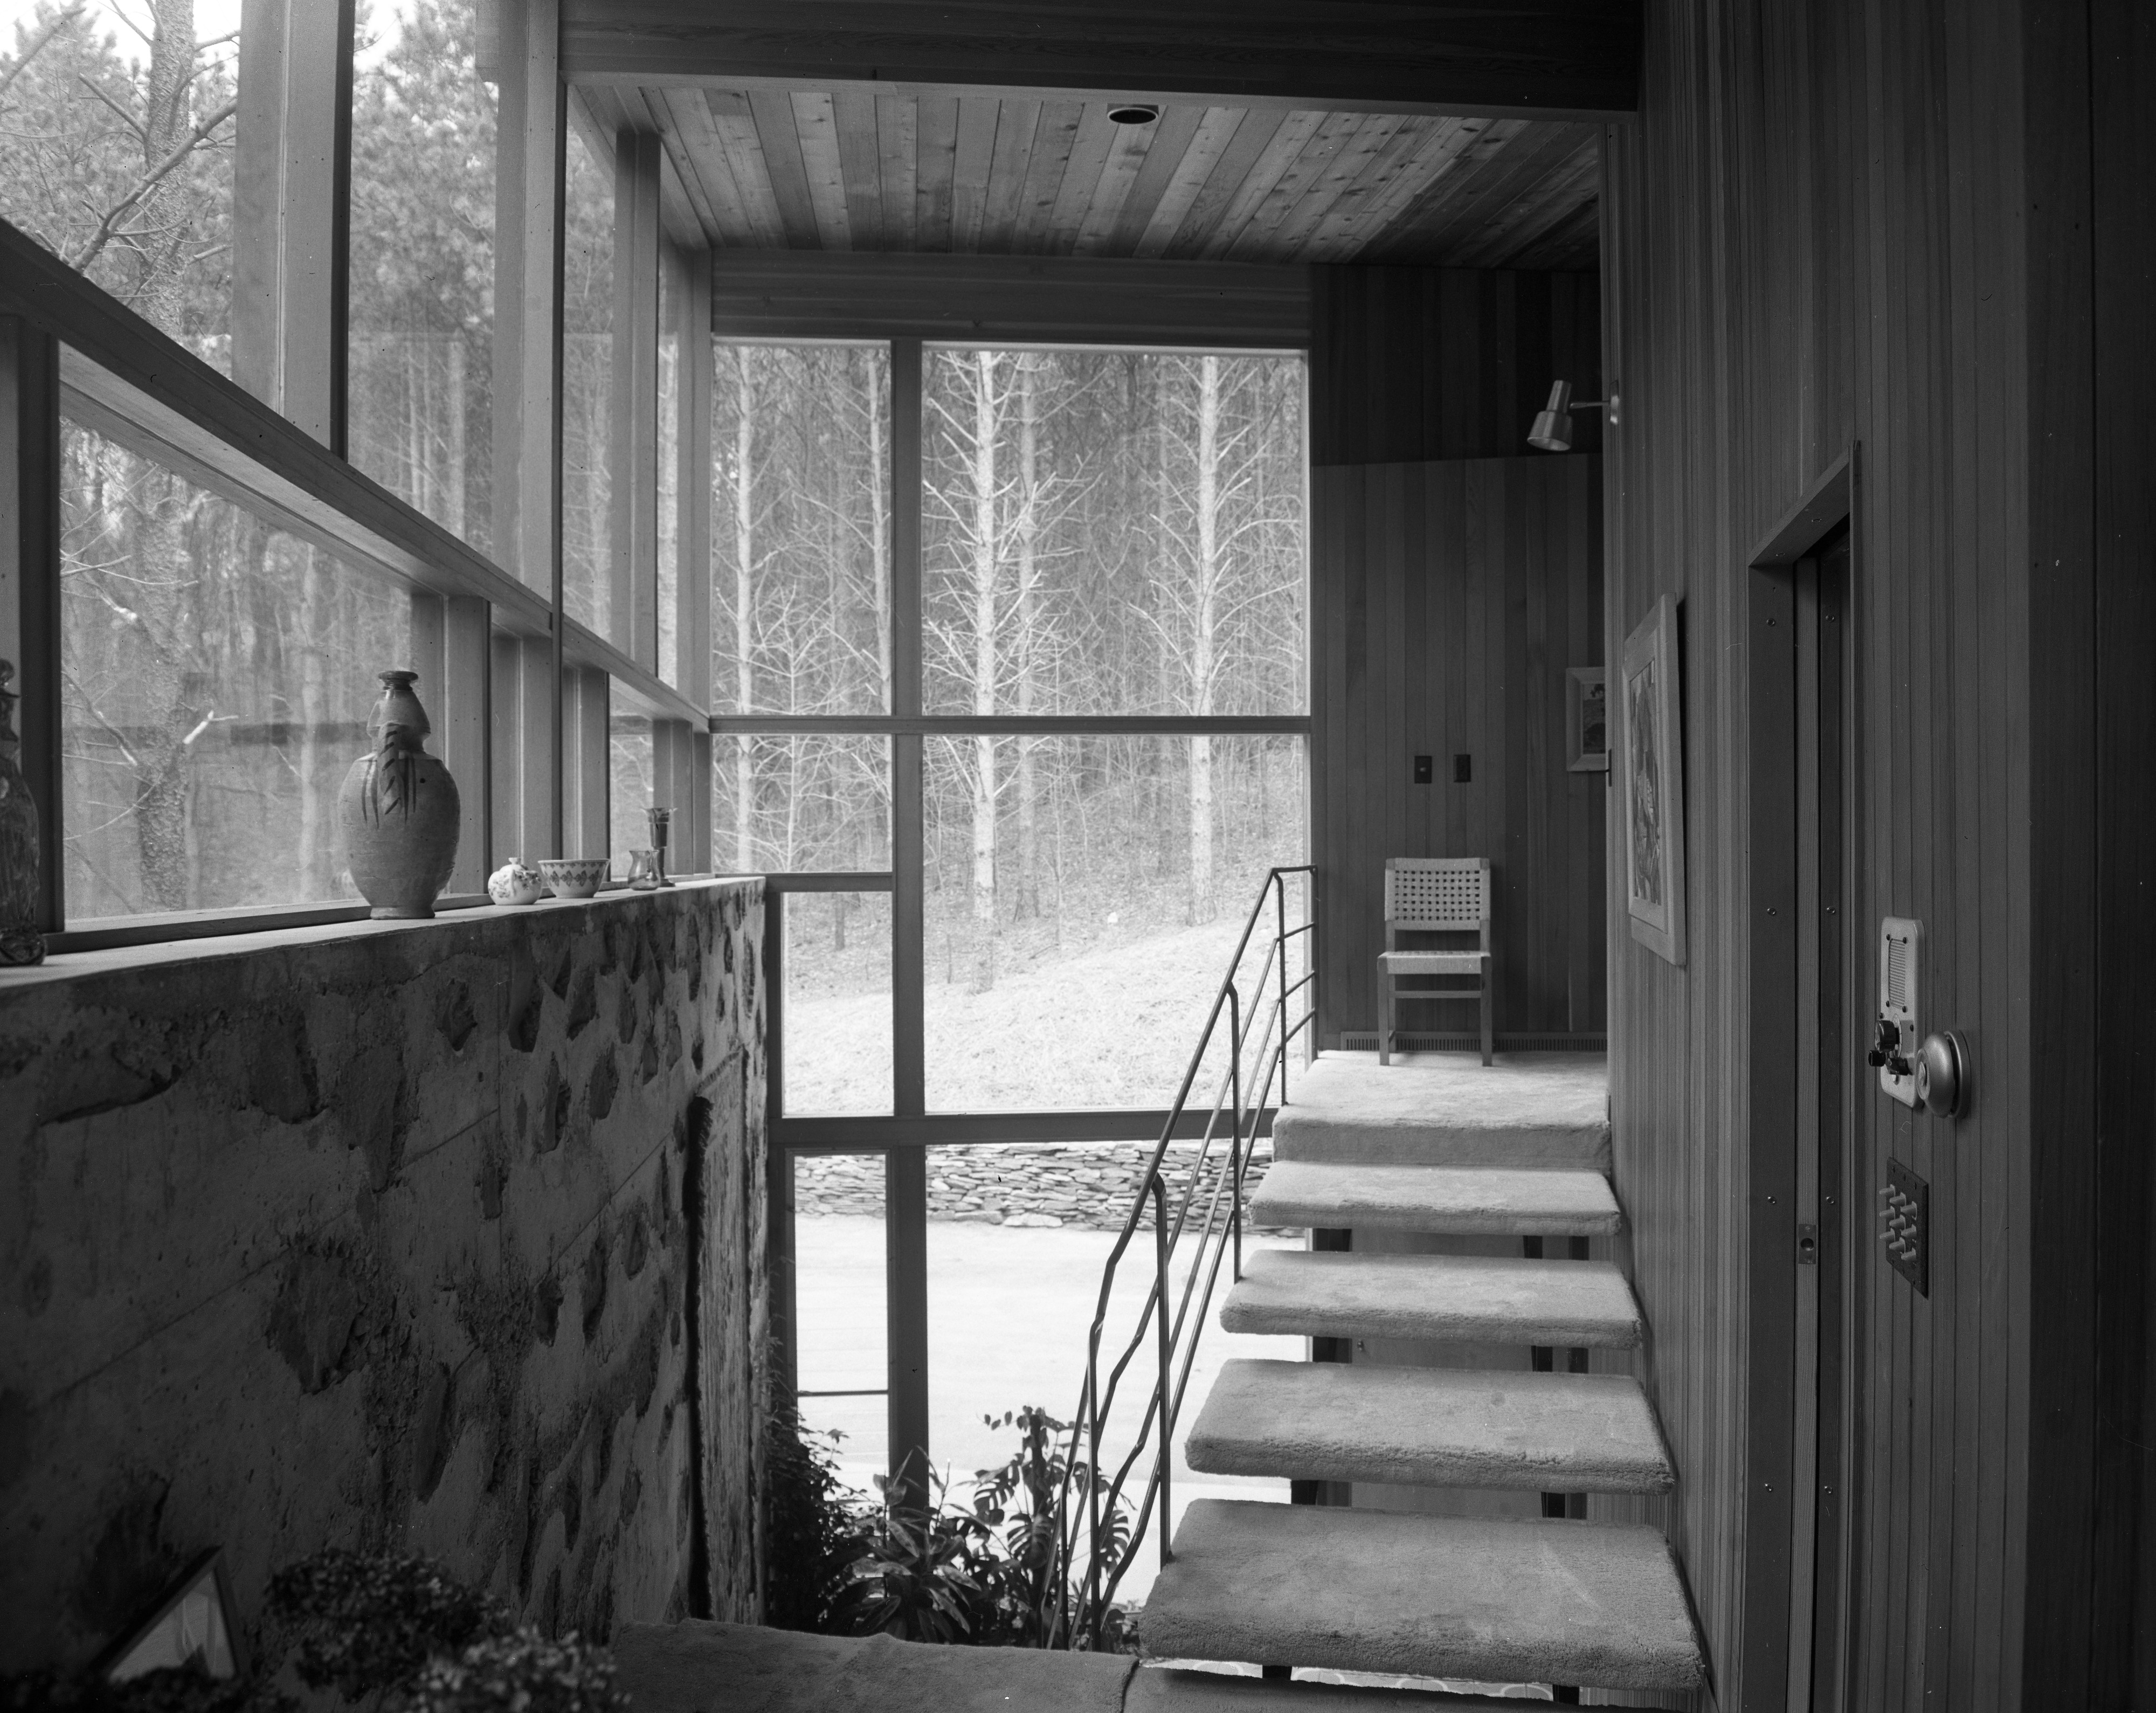 Divided Stairway of Bacon Family Mid-Century Modern Home On Barton Shore Drive, April 1957 image